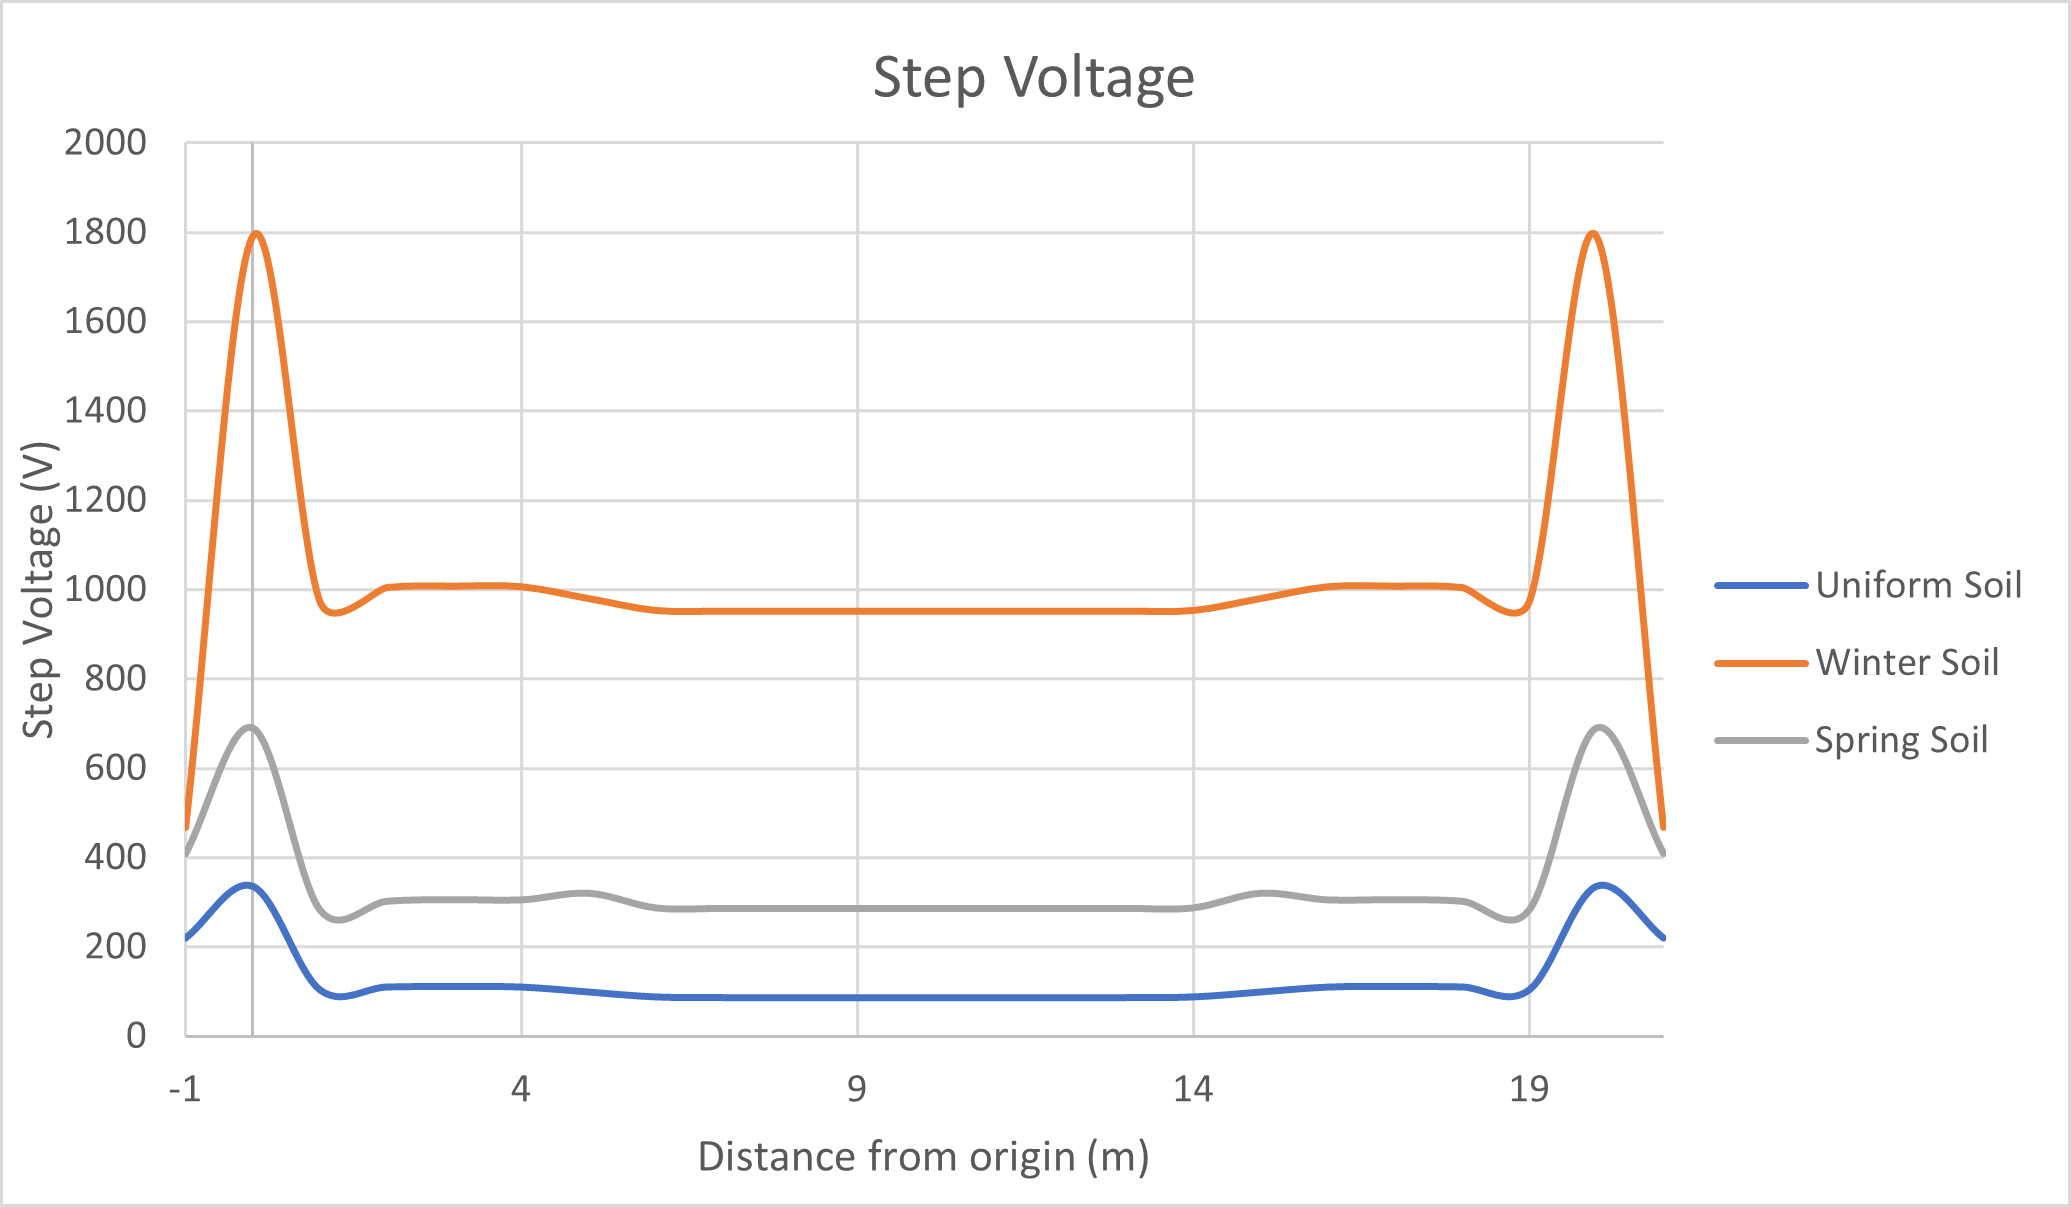 Figure 10 Step voltages of the three profiles - Earth Grid Design for Frozen Soils